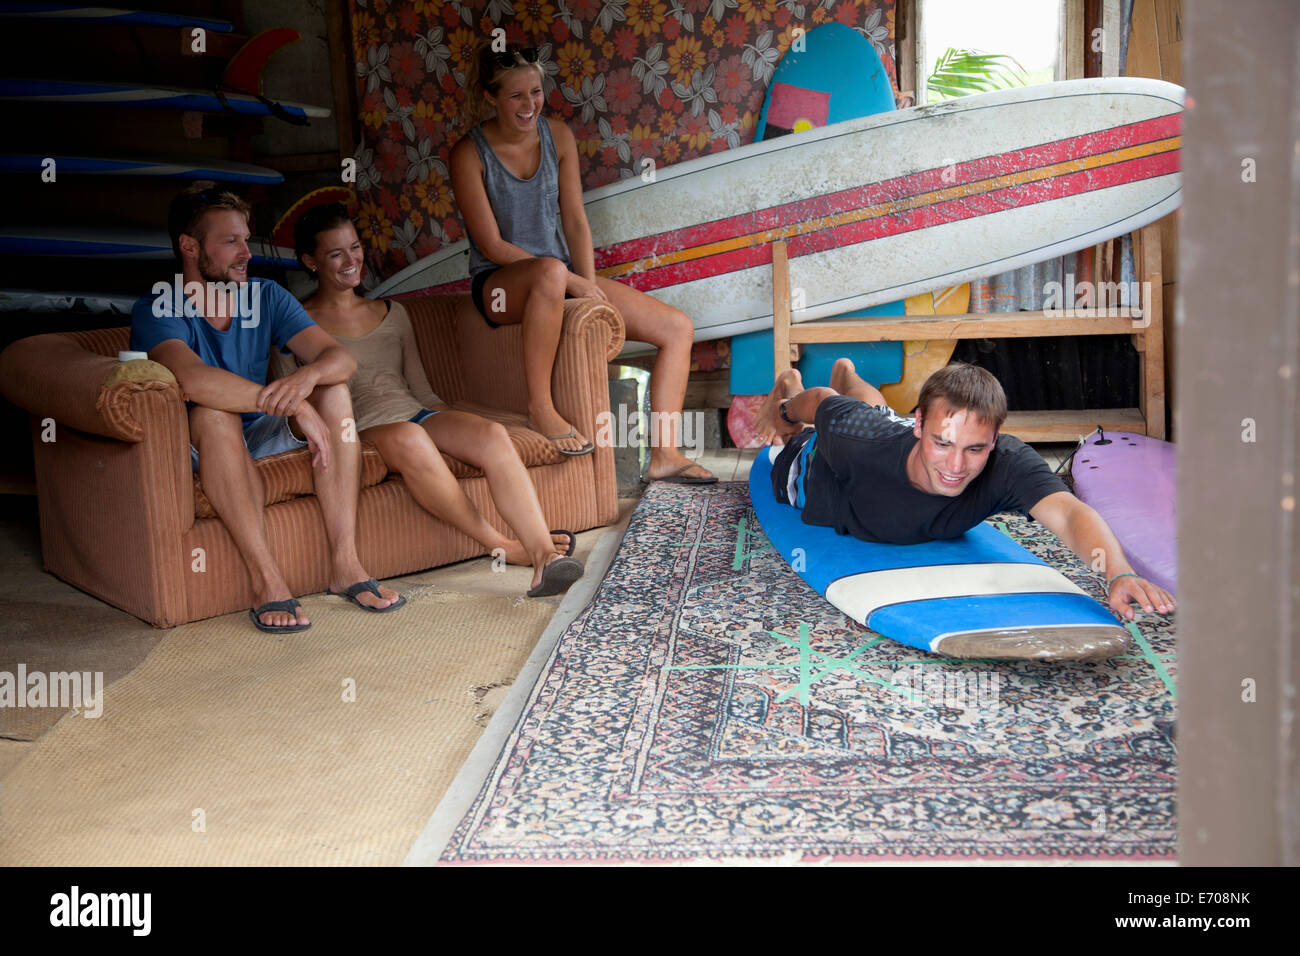 Four young adult surfer friends messing around in surf shed - Stock Image